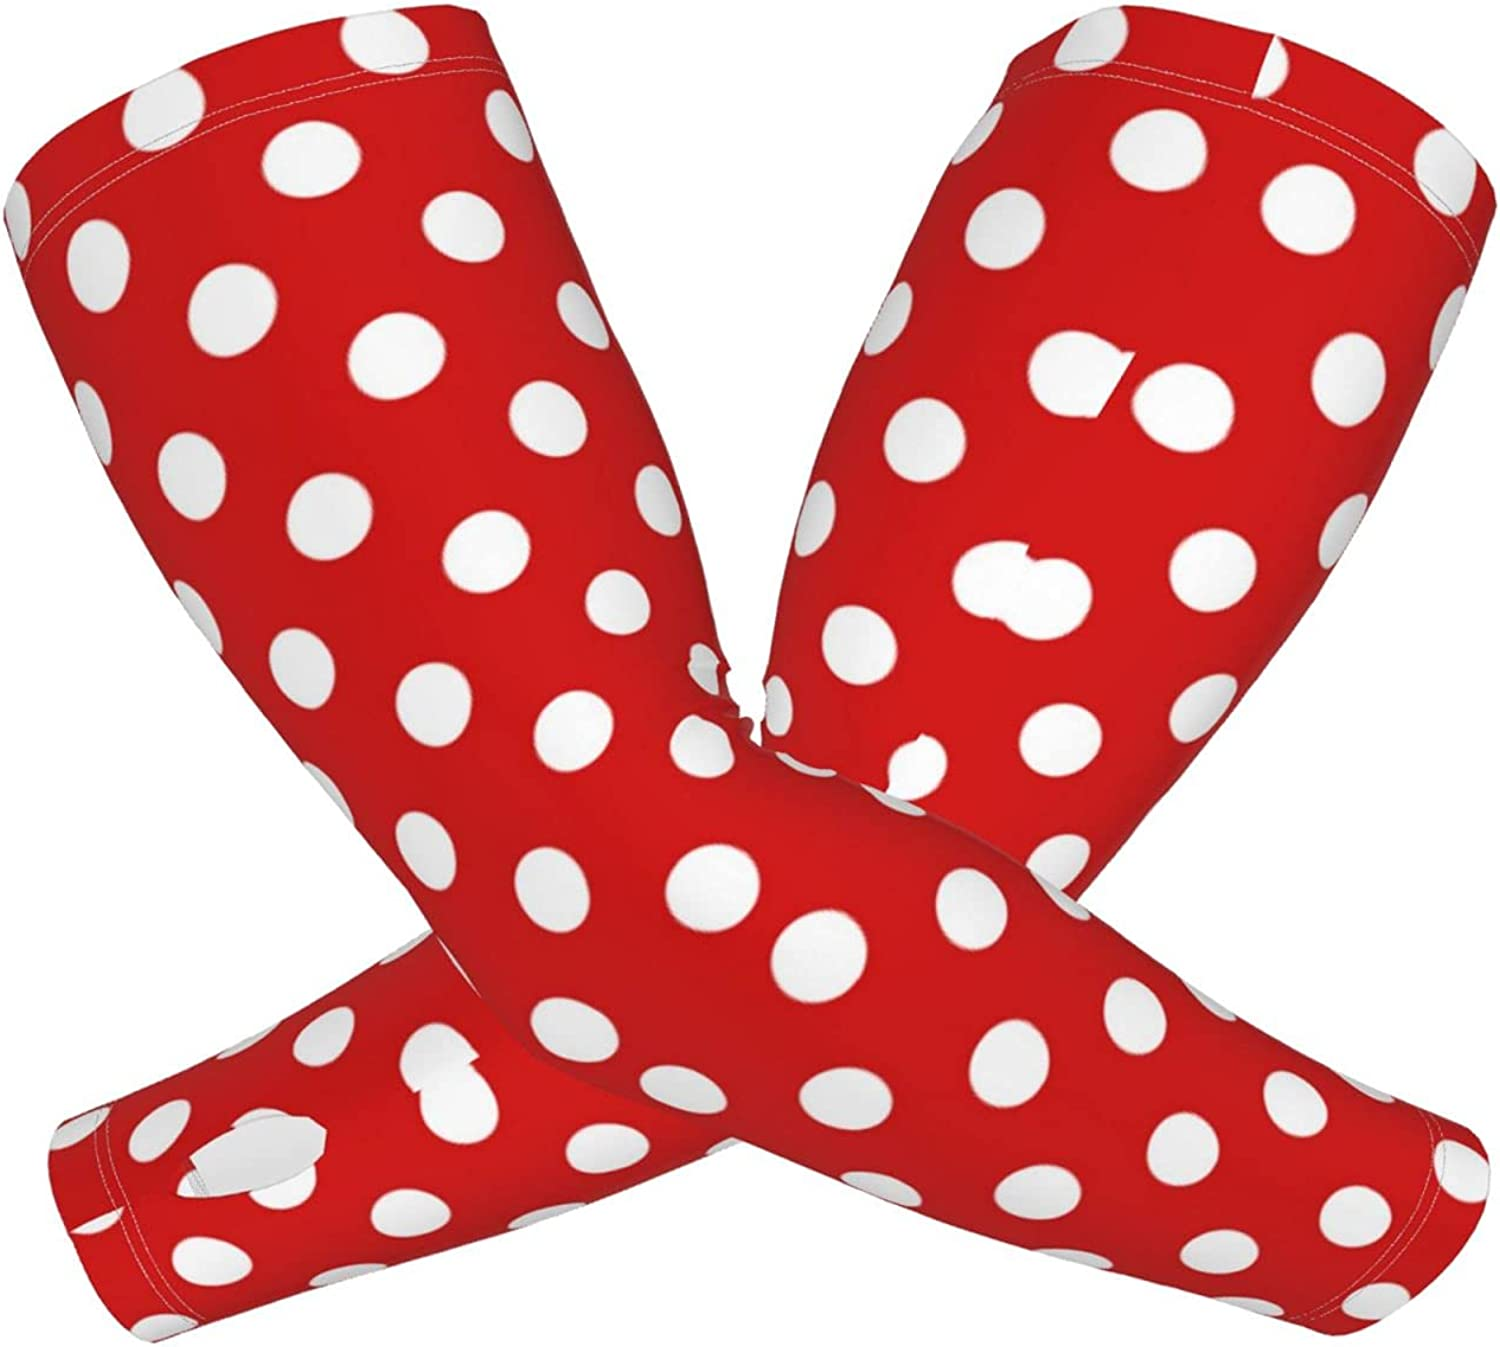 Unisex Sports Cooling Sleeves Fingerless Gloves Red White Polka Dot Sun Protection Arm Sleeves With Thumb Holes